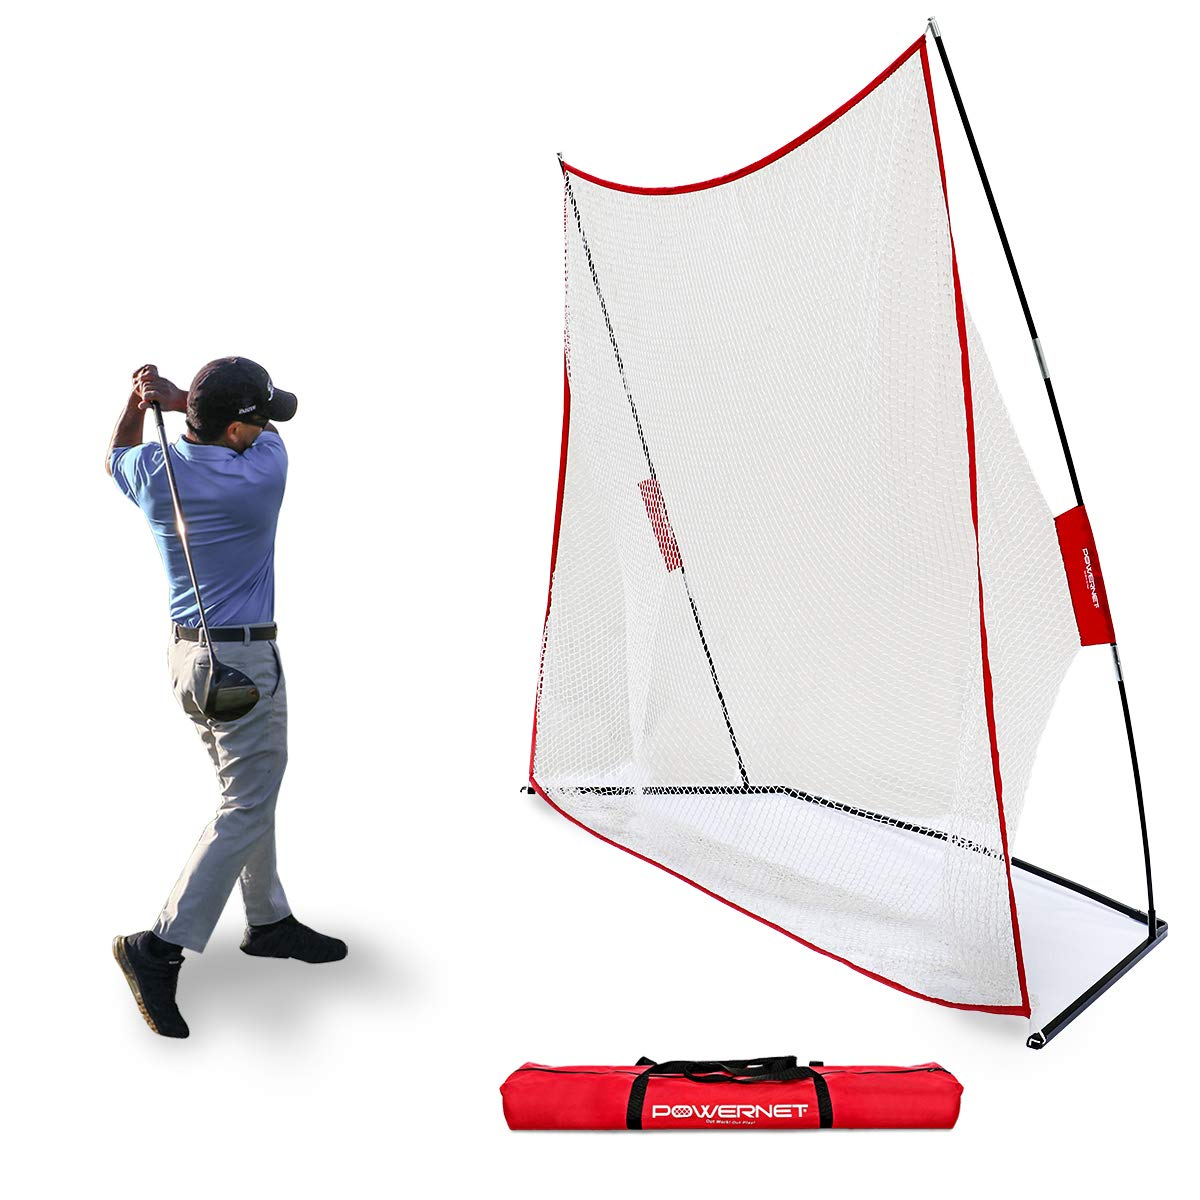 PowerNet Golf Net | Use Real or Practice Balls | New and Improved Design for 2019 | for Working on Drives, Chips with Woods or Irons | Large Hitting Surface | Indoor or Outdoor Use (10' x 7') by PowerNet